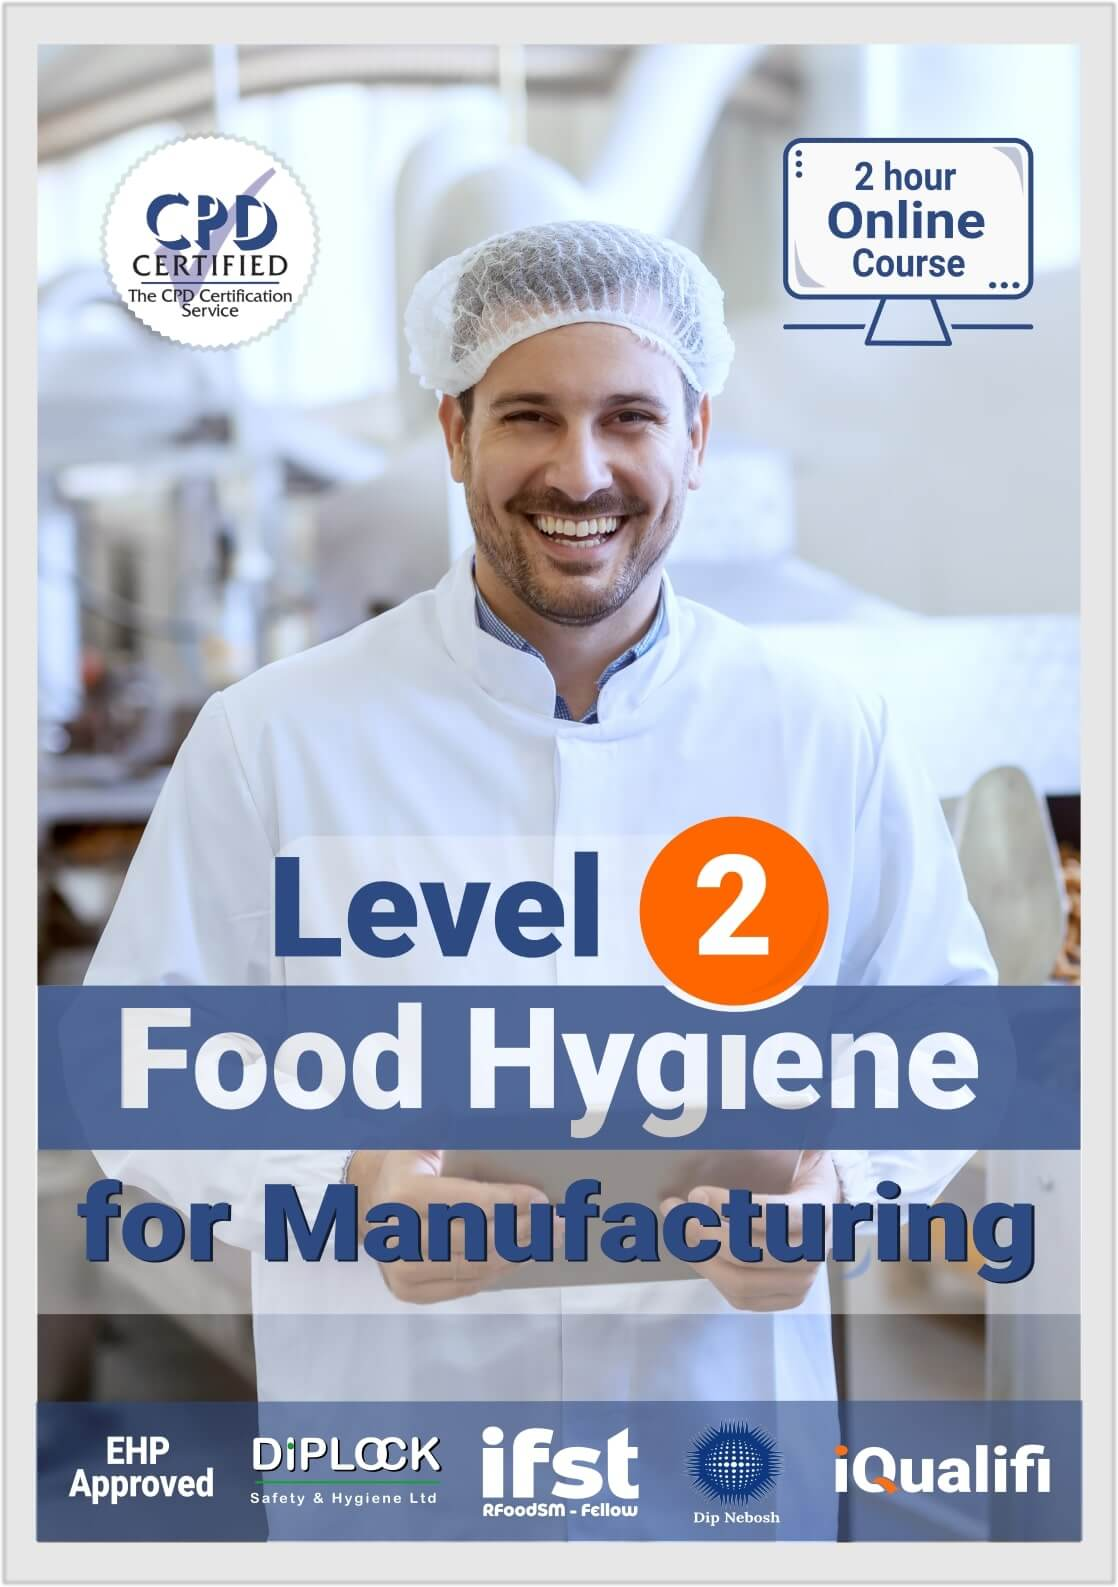 Level 2 Food Hygiene for Manufacturing